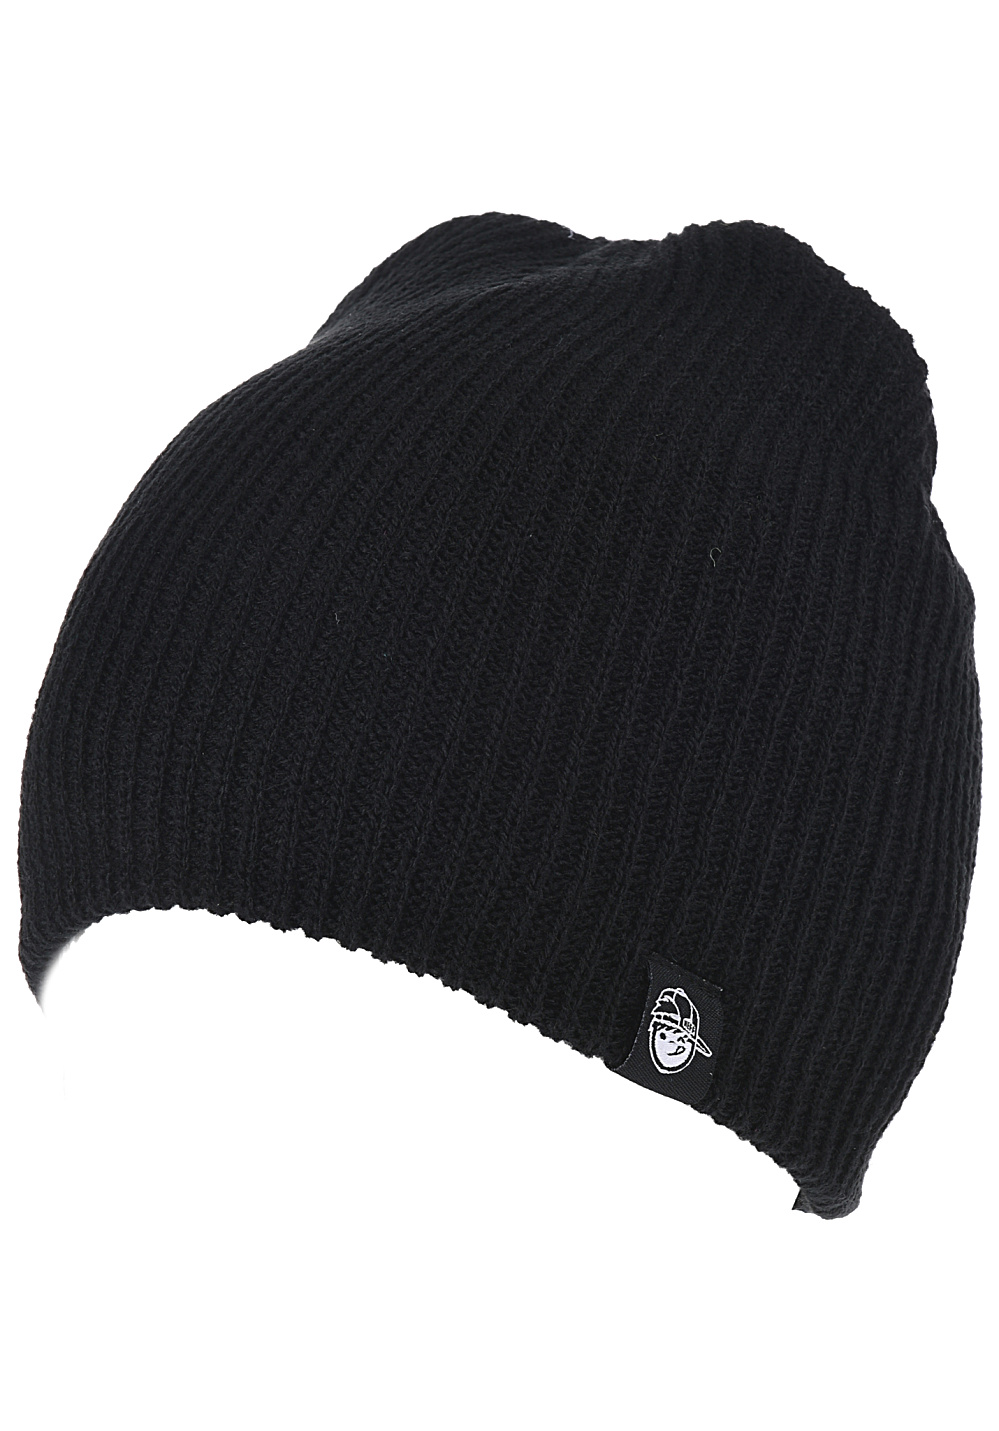 cd1a238a7d8 NEFF Youth Daily - Beanie - Black - Planet Sports